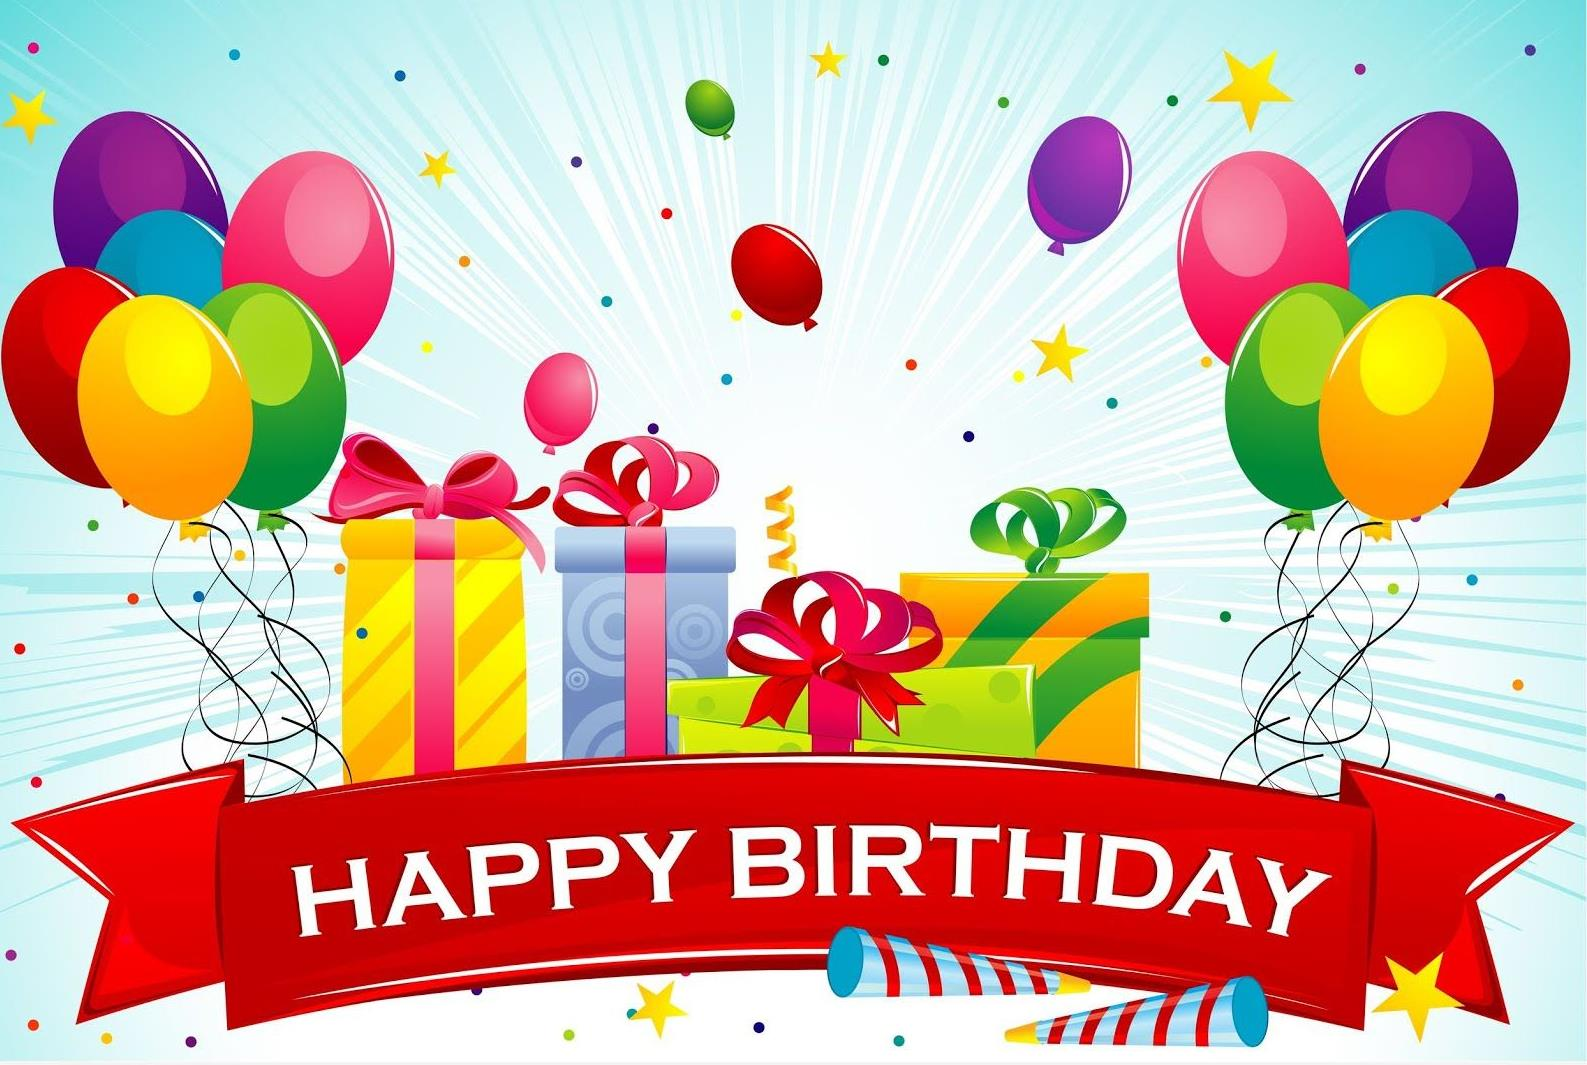 happy birthday card images for him ; Happy_birthday_cards-2